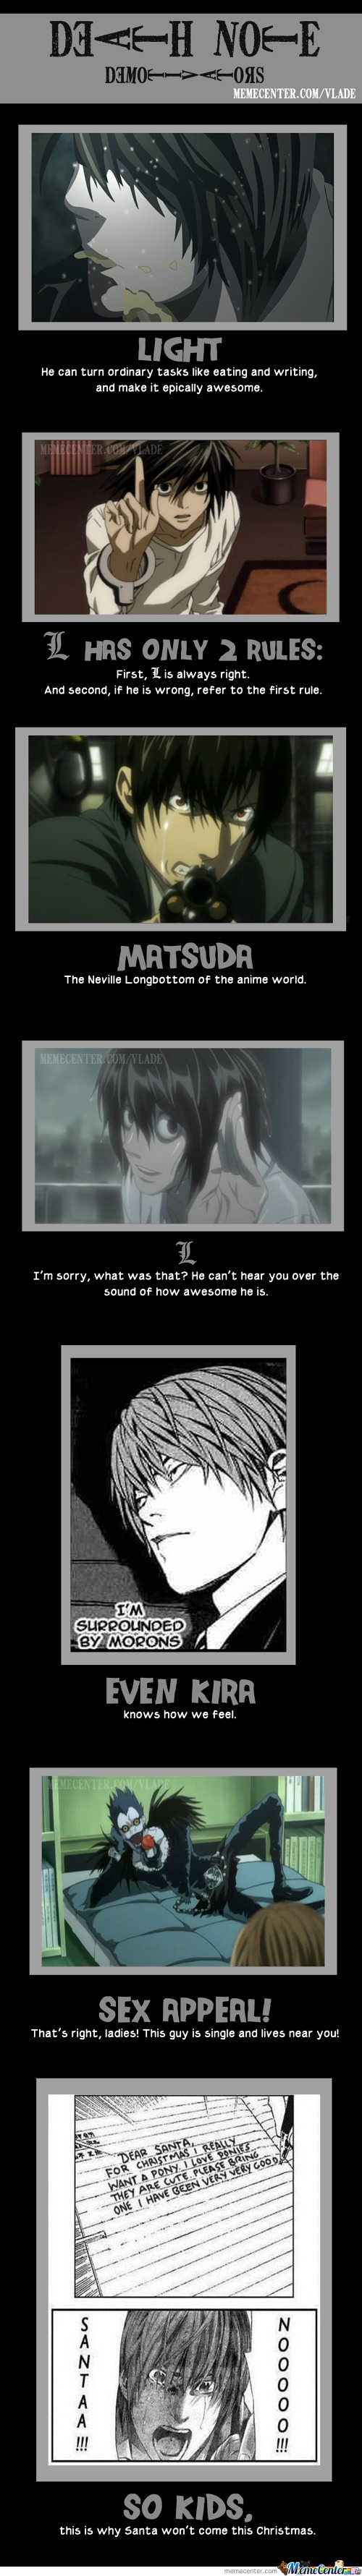 Death Note Demotivators!